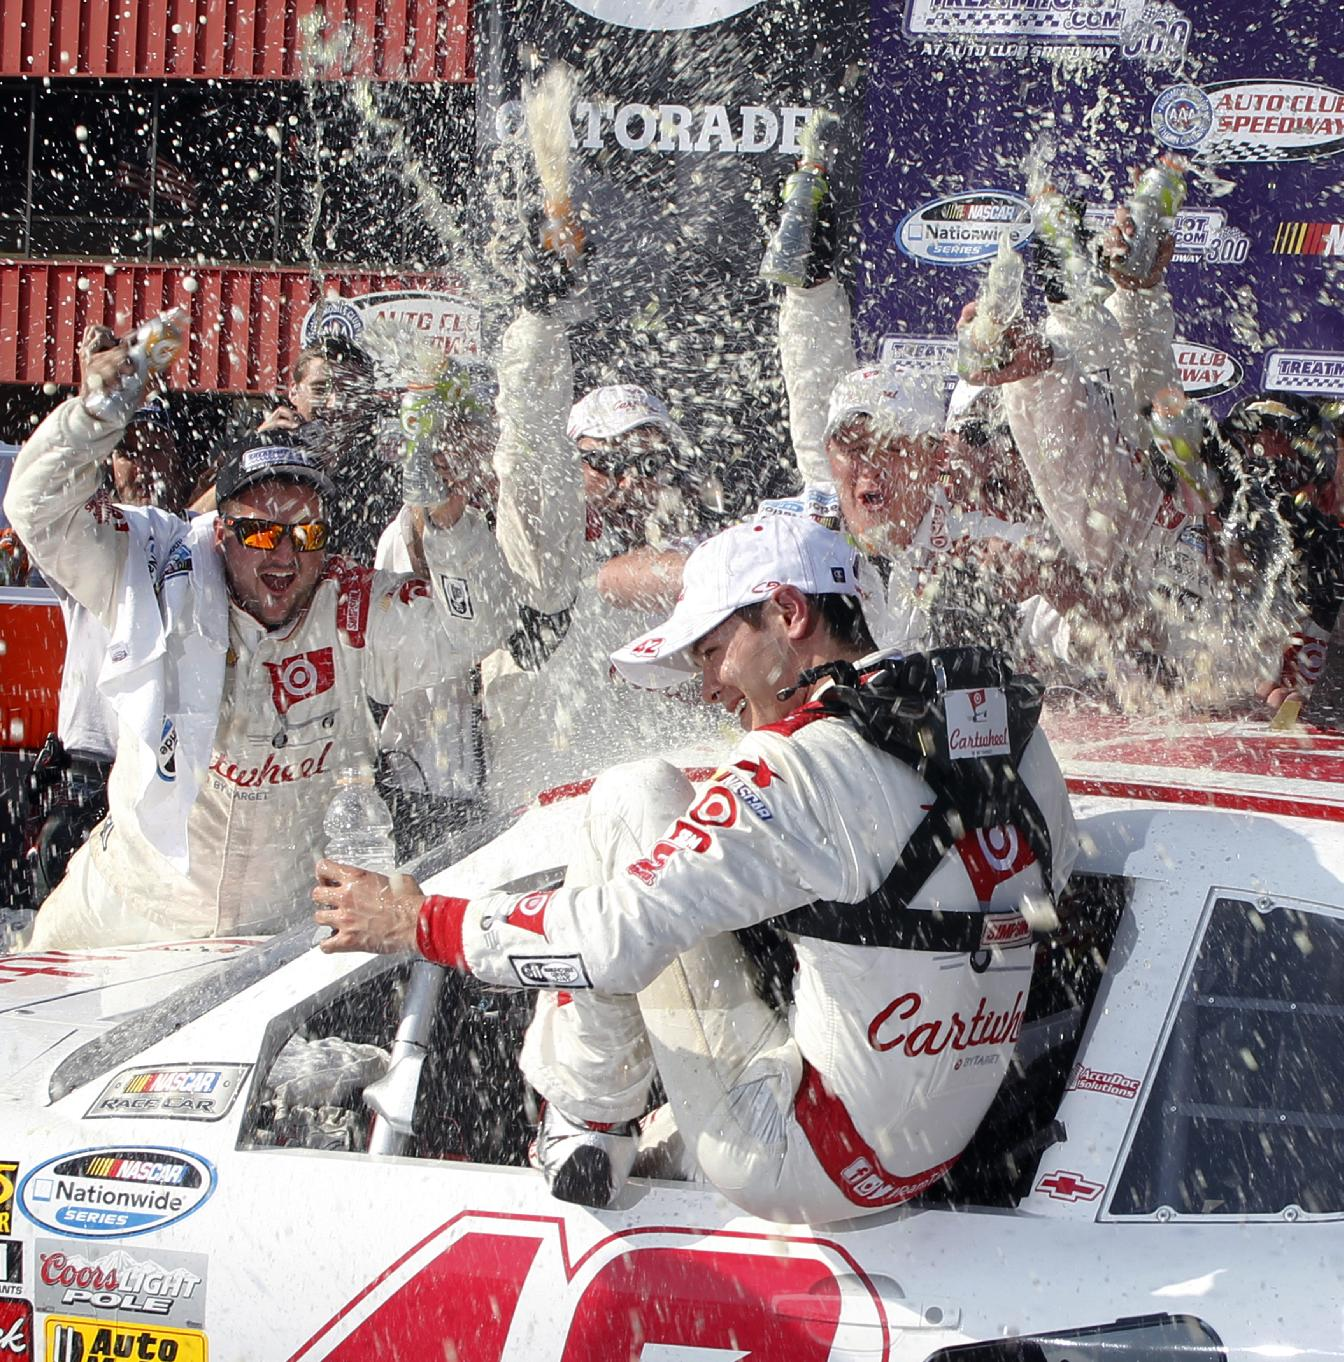 Larson dazzles in drive to the front at Fontana